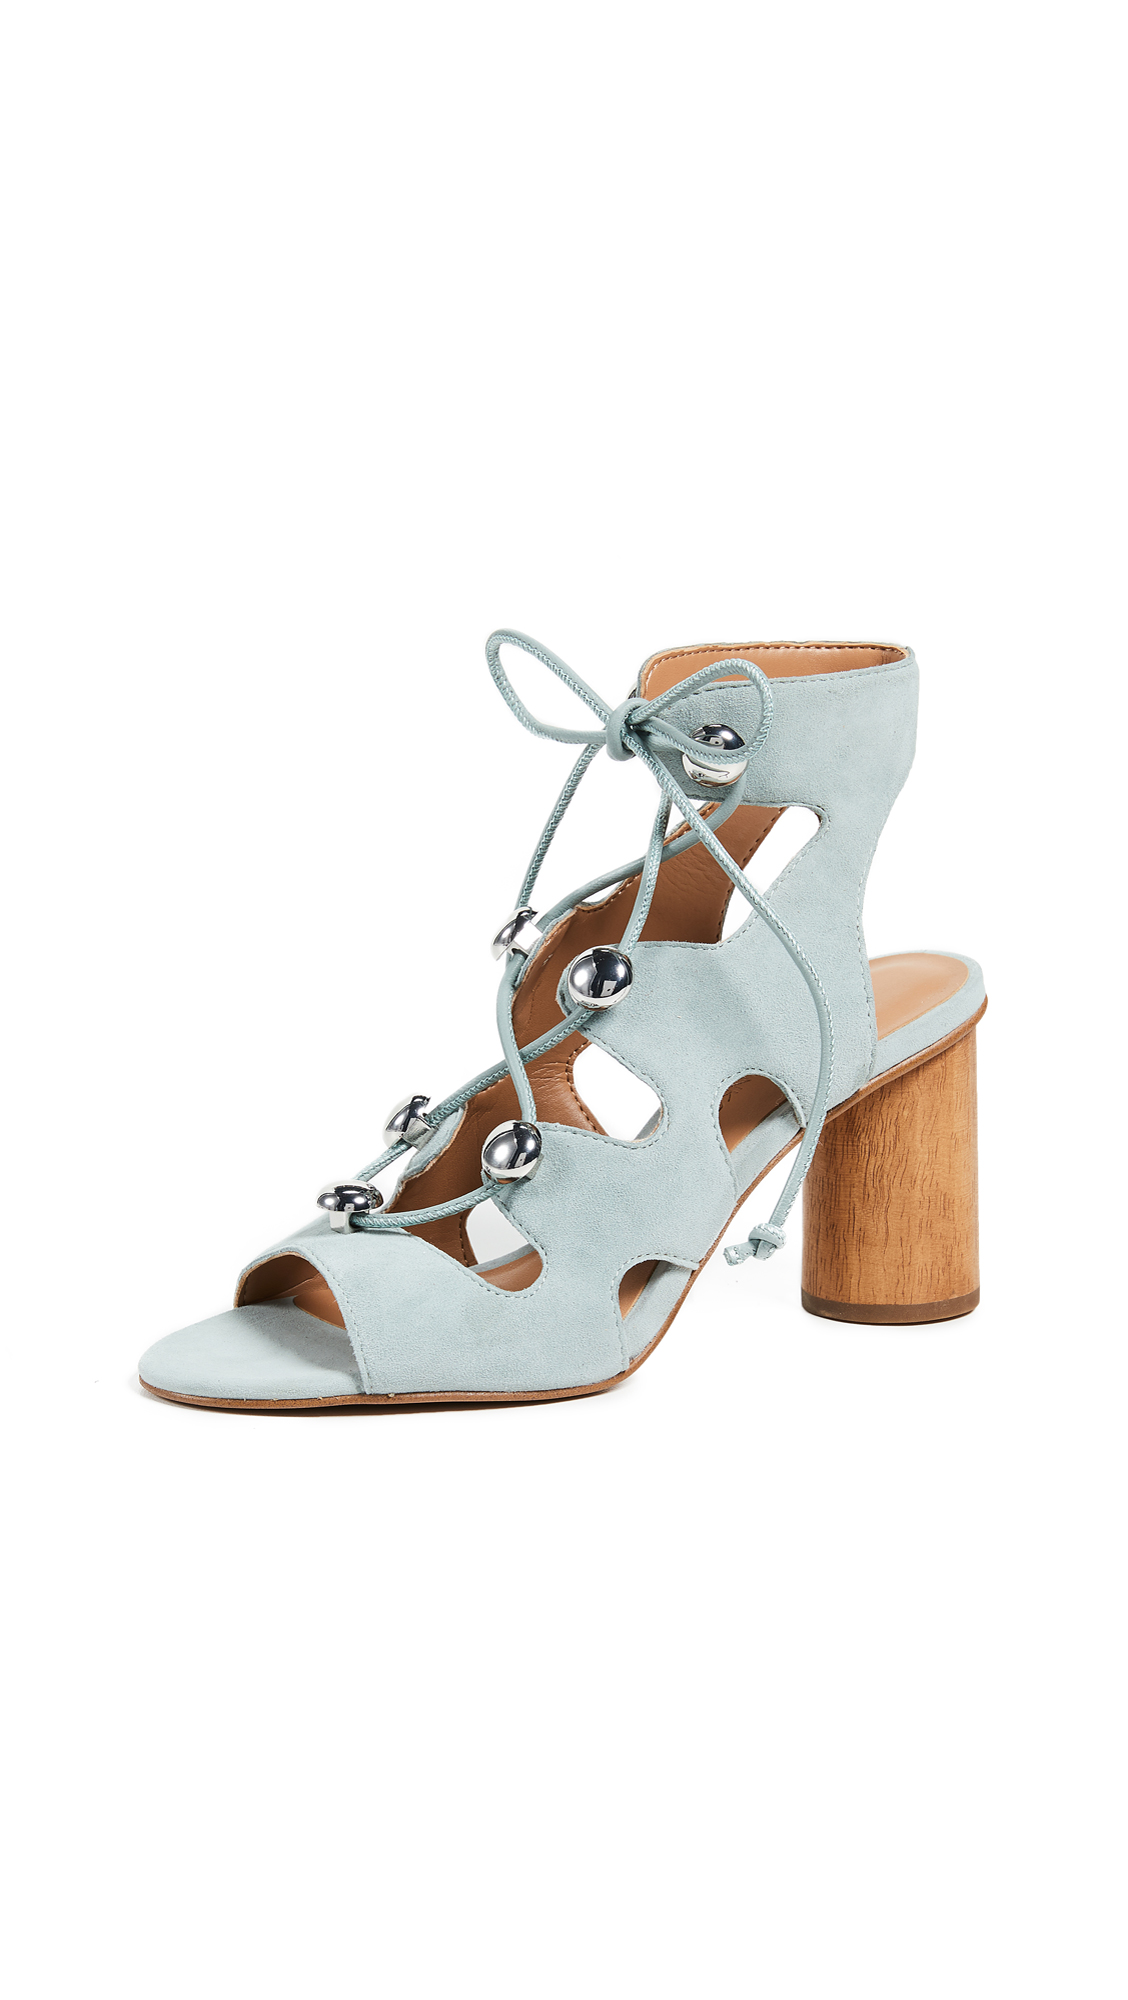 Rebecca Minkoff Adiv Block Heel Sandals - Dusty Green